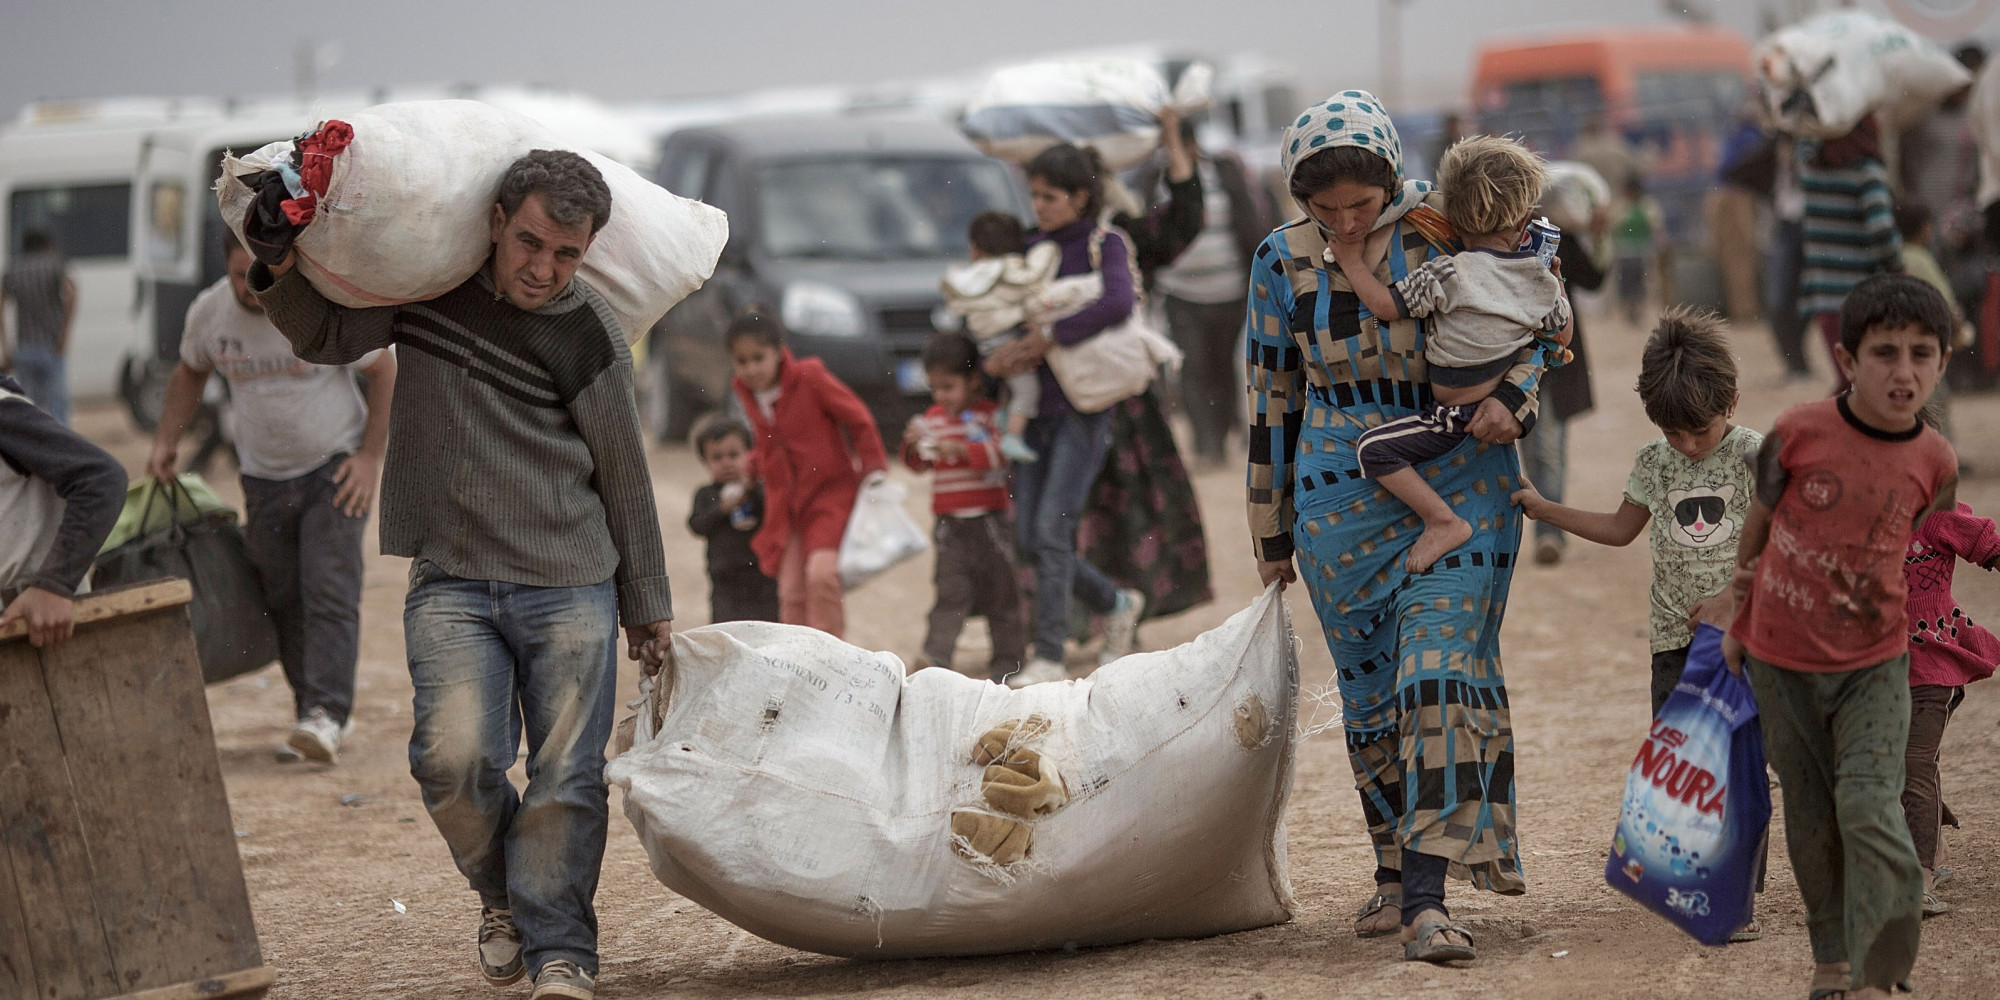 a history of refugees Neighbouring lebanon, jordan and turkey have struggled to cope with one of the largest refugee exoduses in recent history about 10% of syrian refugees have sought safety in europe,.